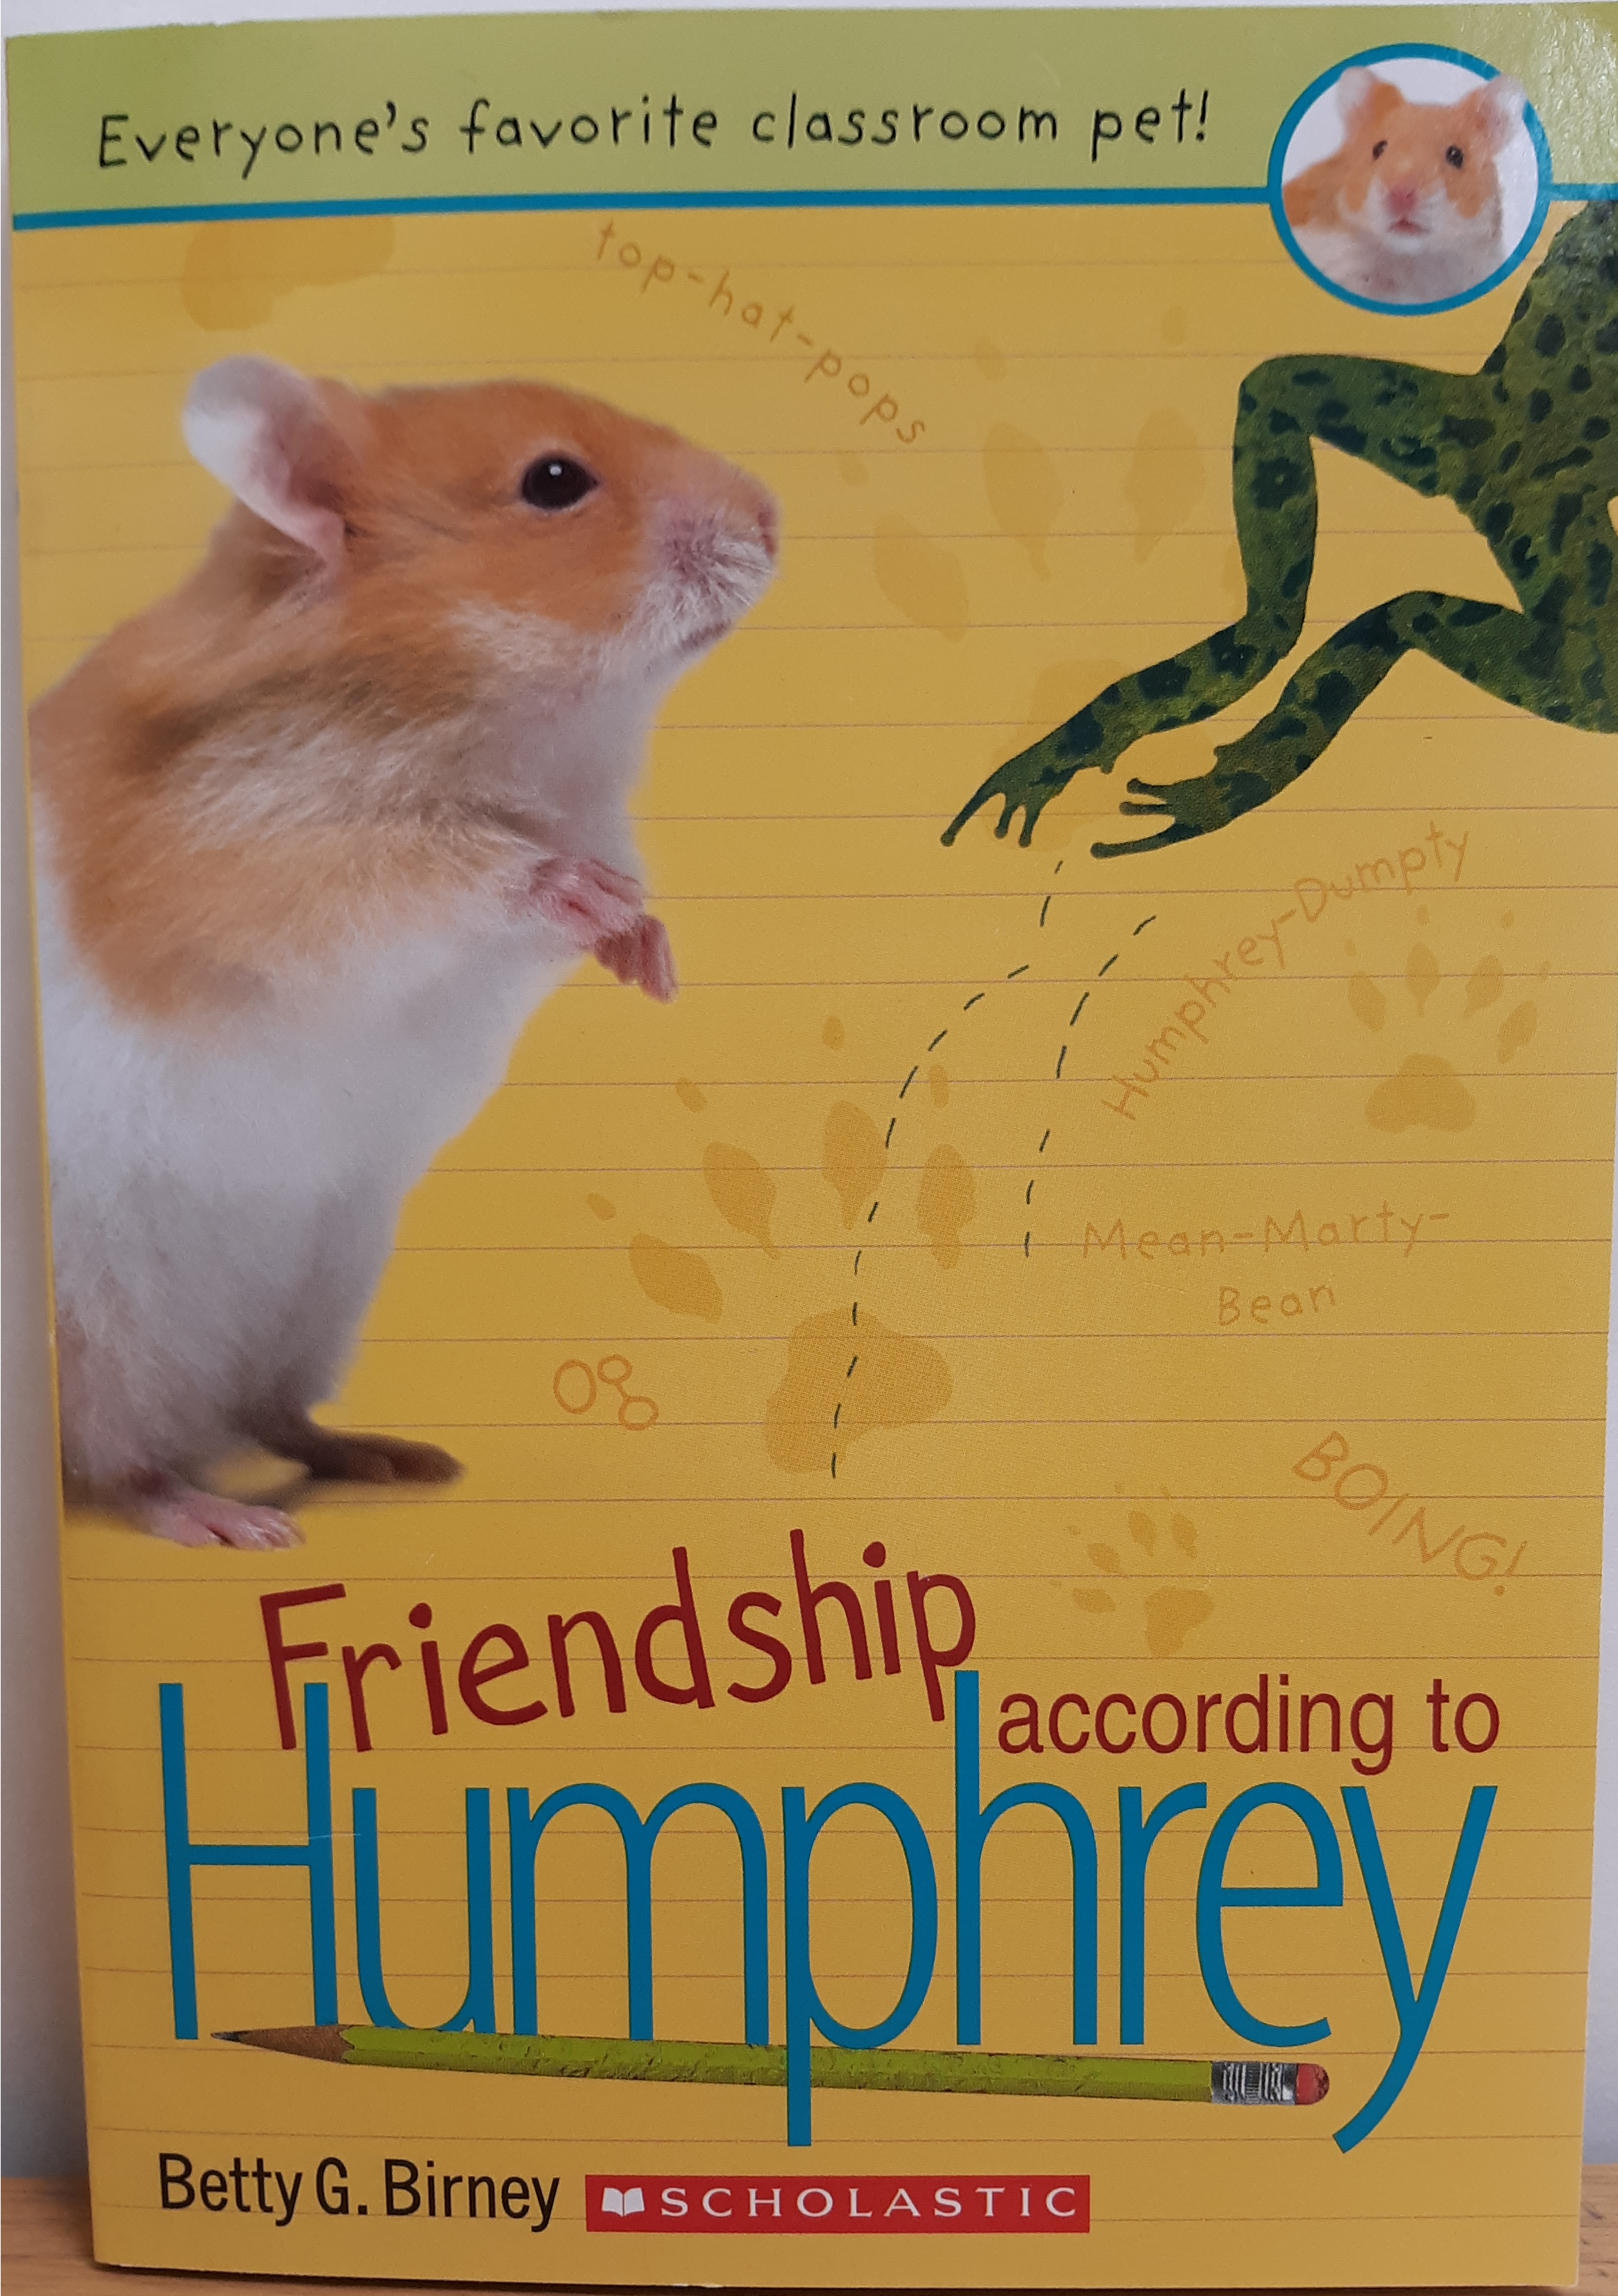 https://0201.nccdn.net/1_2/000/000/145/e5b/humphrey-friendship.png